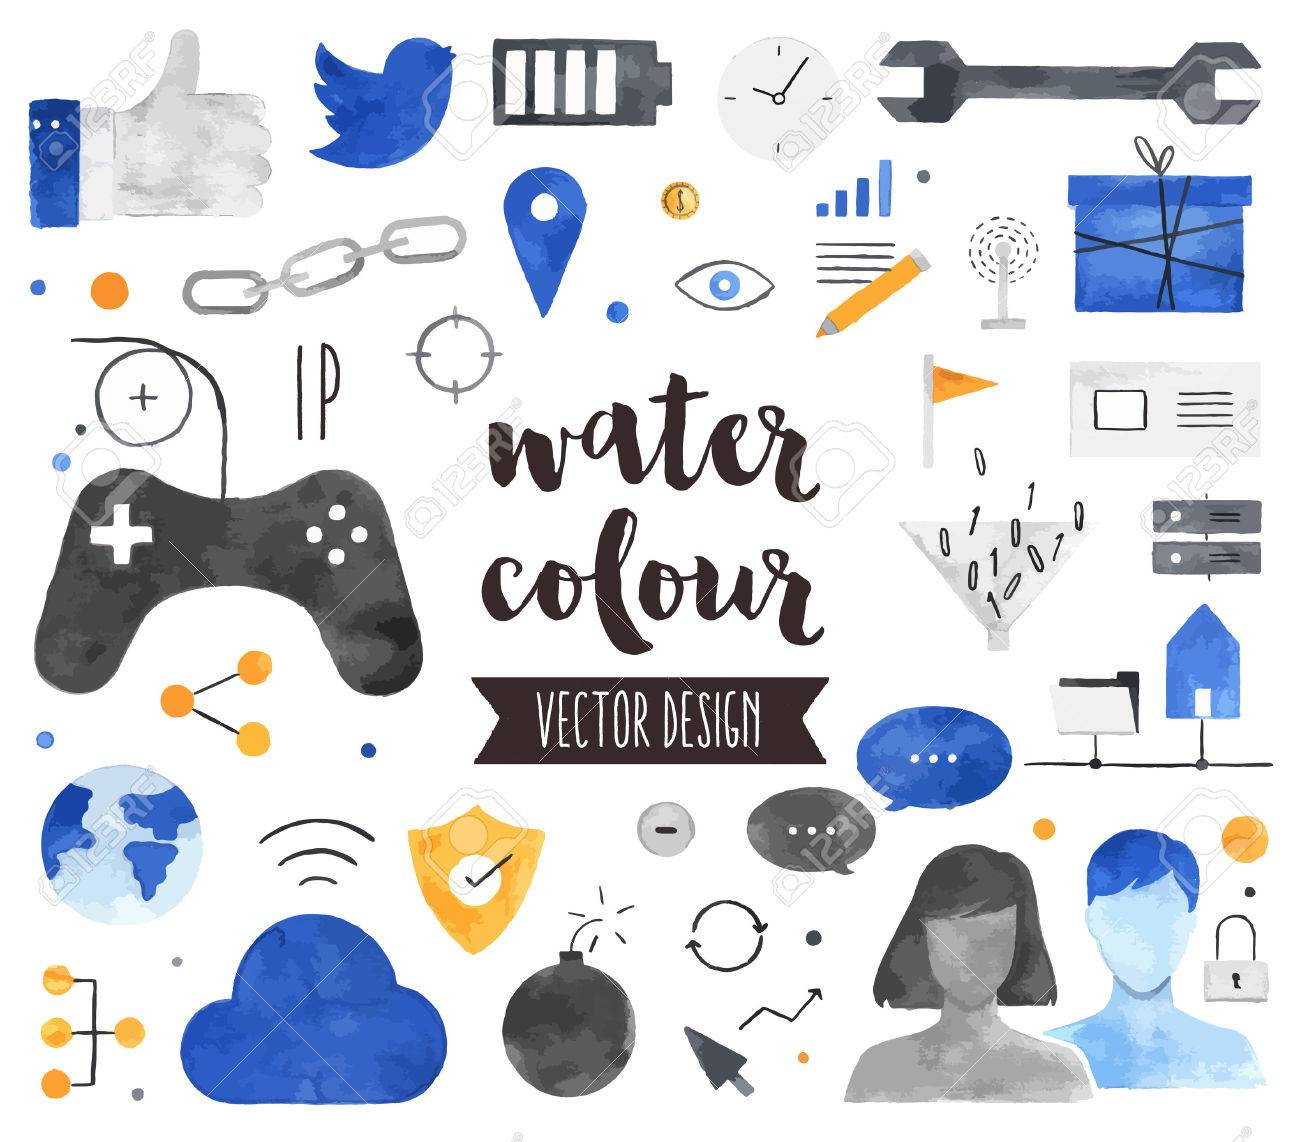 Premium quality watercolor icons set of people connection, social gaming community. Hand drawn realistic decoration with text lettering. Flat lay watercolour objects isolated on white background. - 54788334